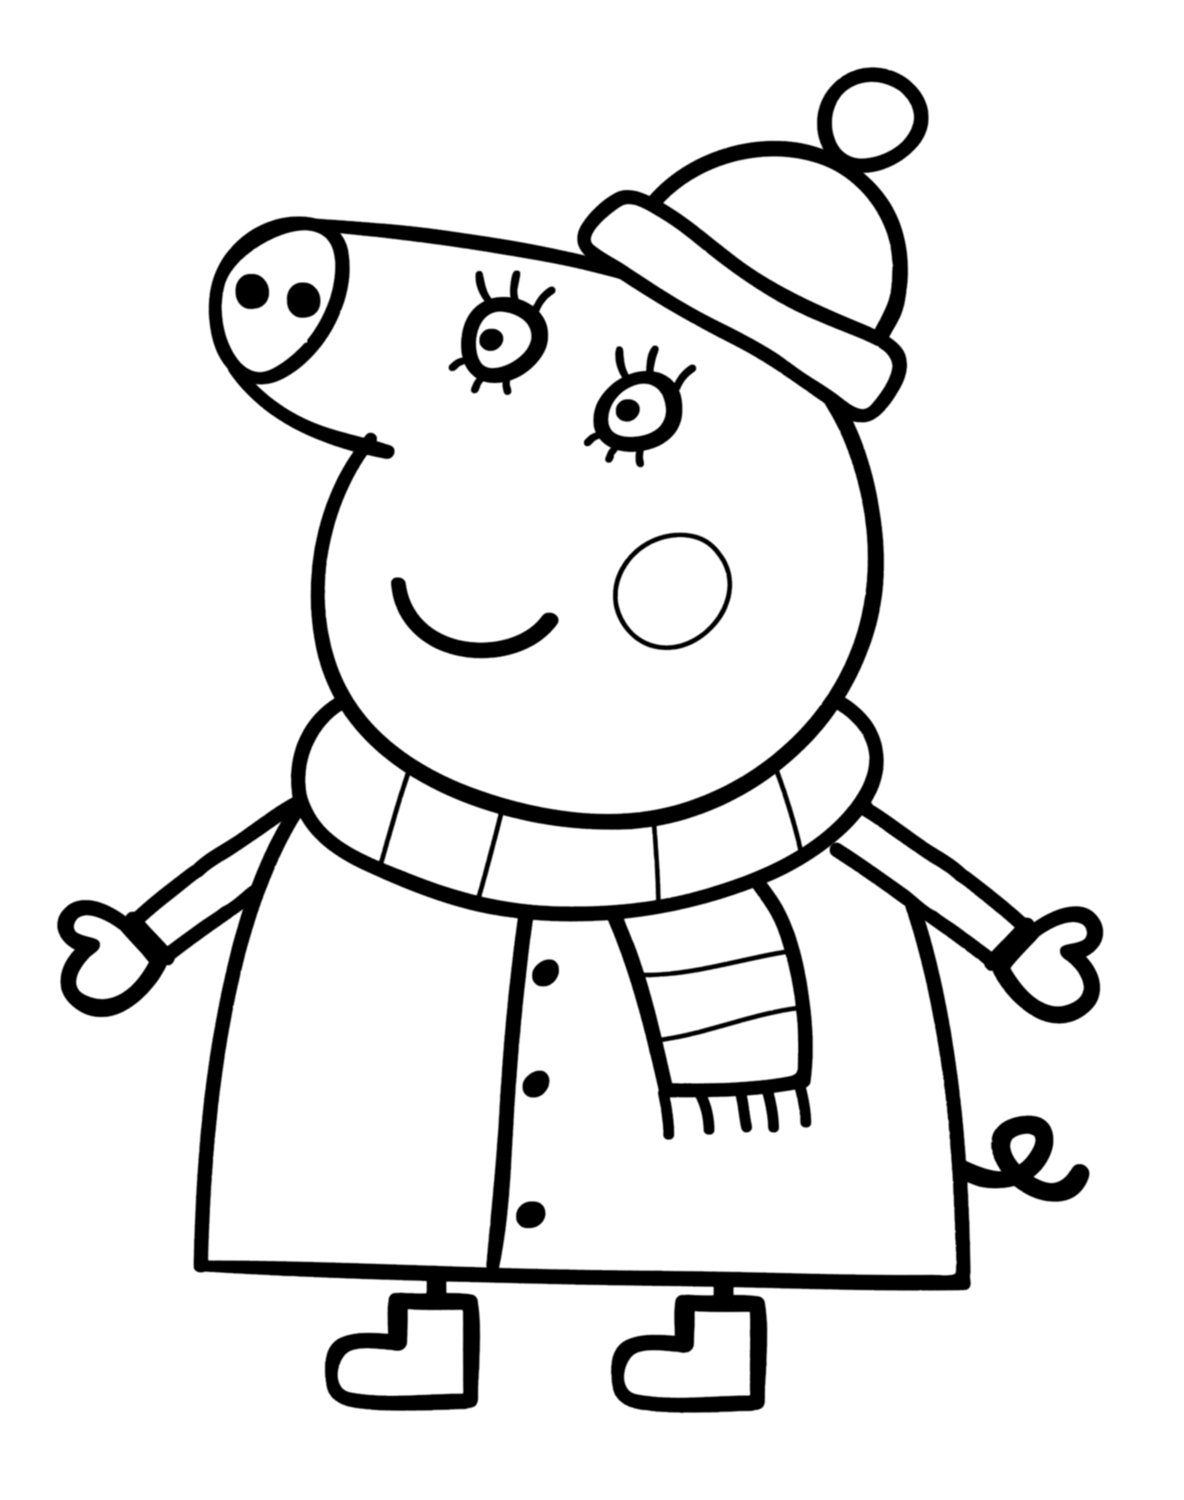 peppa pig coloring pages printable fun learn free worksheets for kid peppa pig coloring printable pig pages coloring peppa